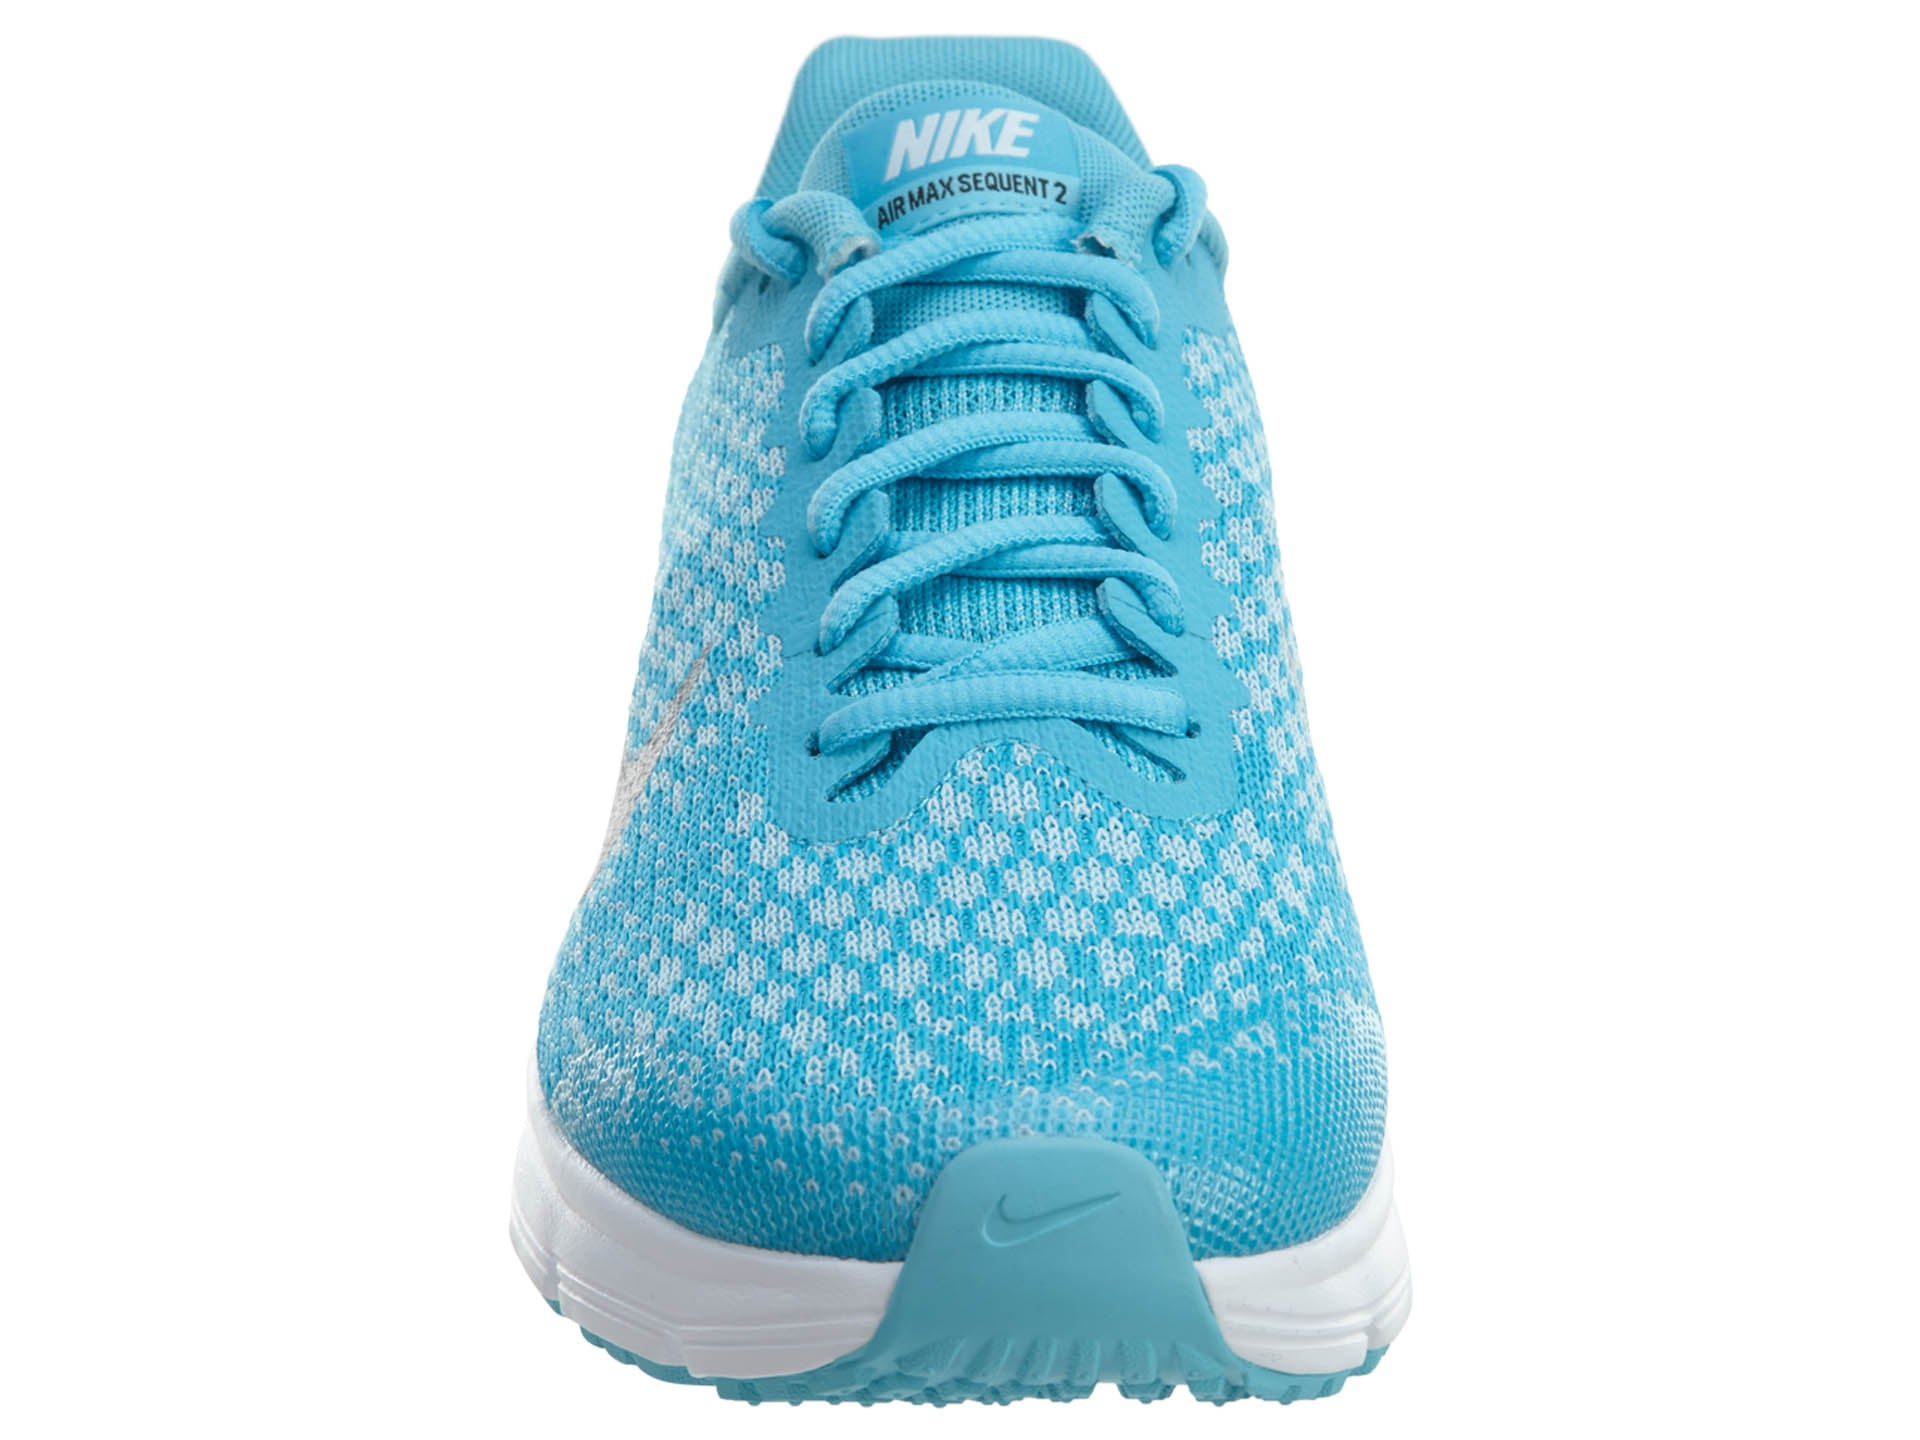 8bd020d745 Nike Air Max Sequent 2 Big Kids Style : 869994